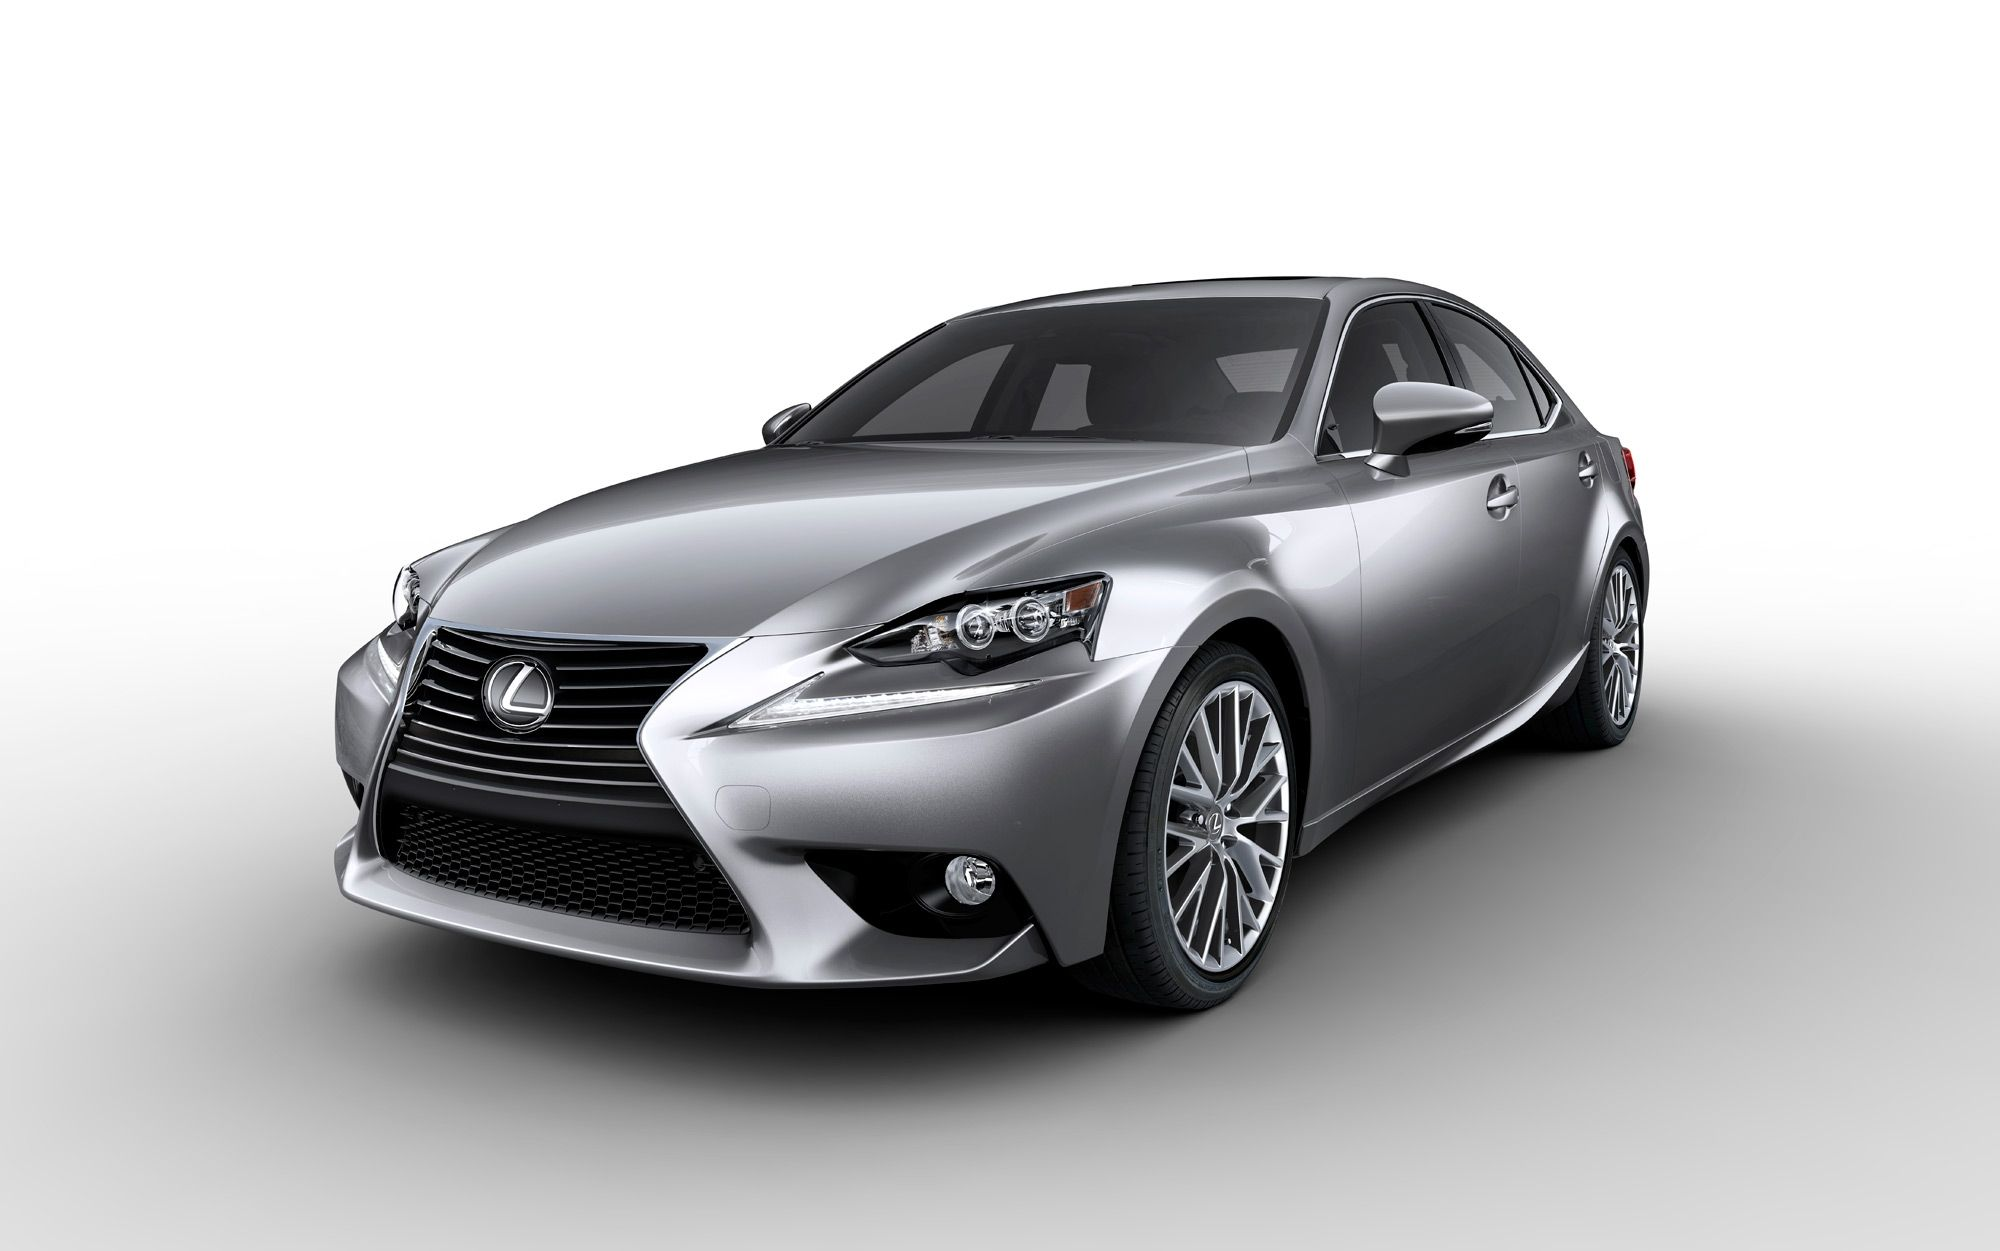 2016 Lexus IS F Sport Sports car brands, Most expensive